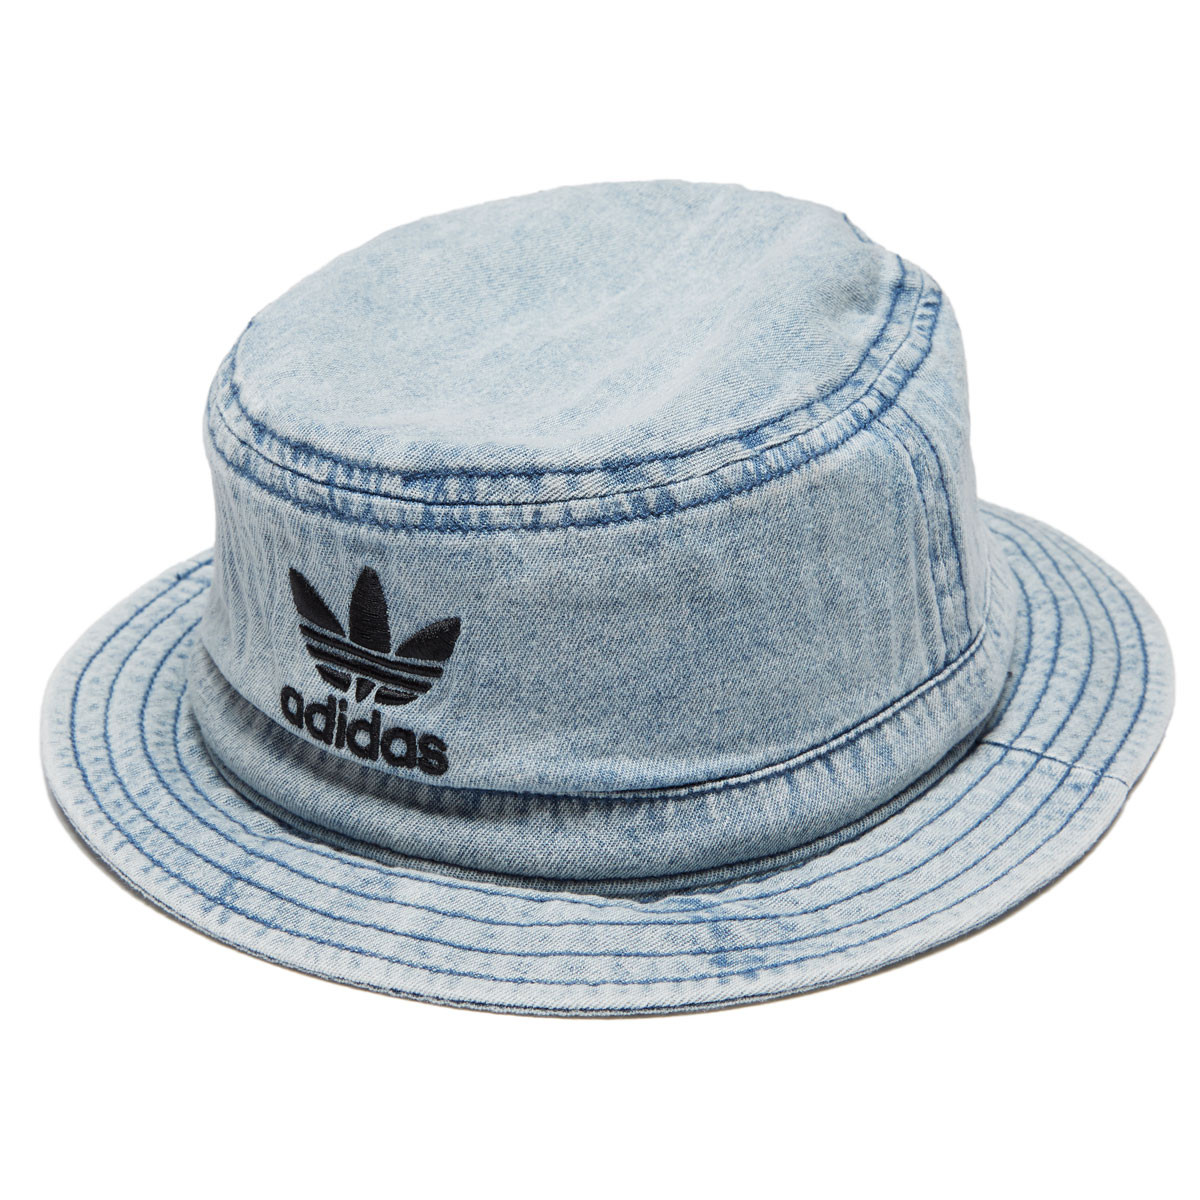 Adidas Originals Denim Bucket Hat - Collegiate Navy Black dae2082f326